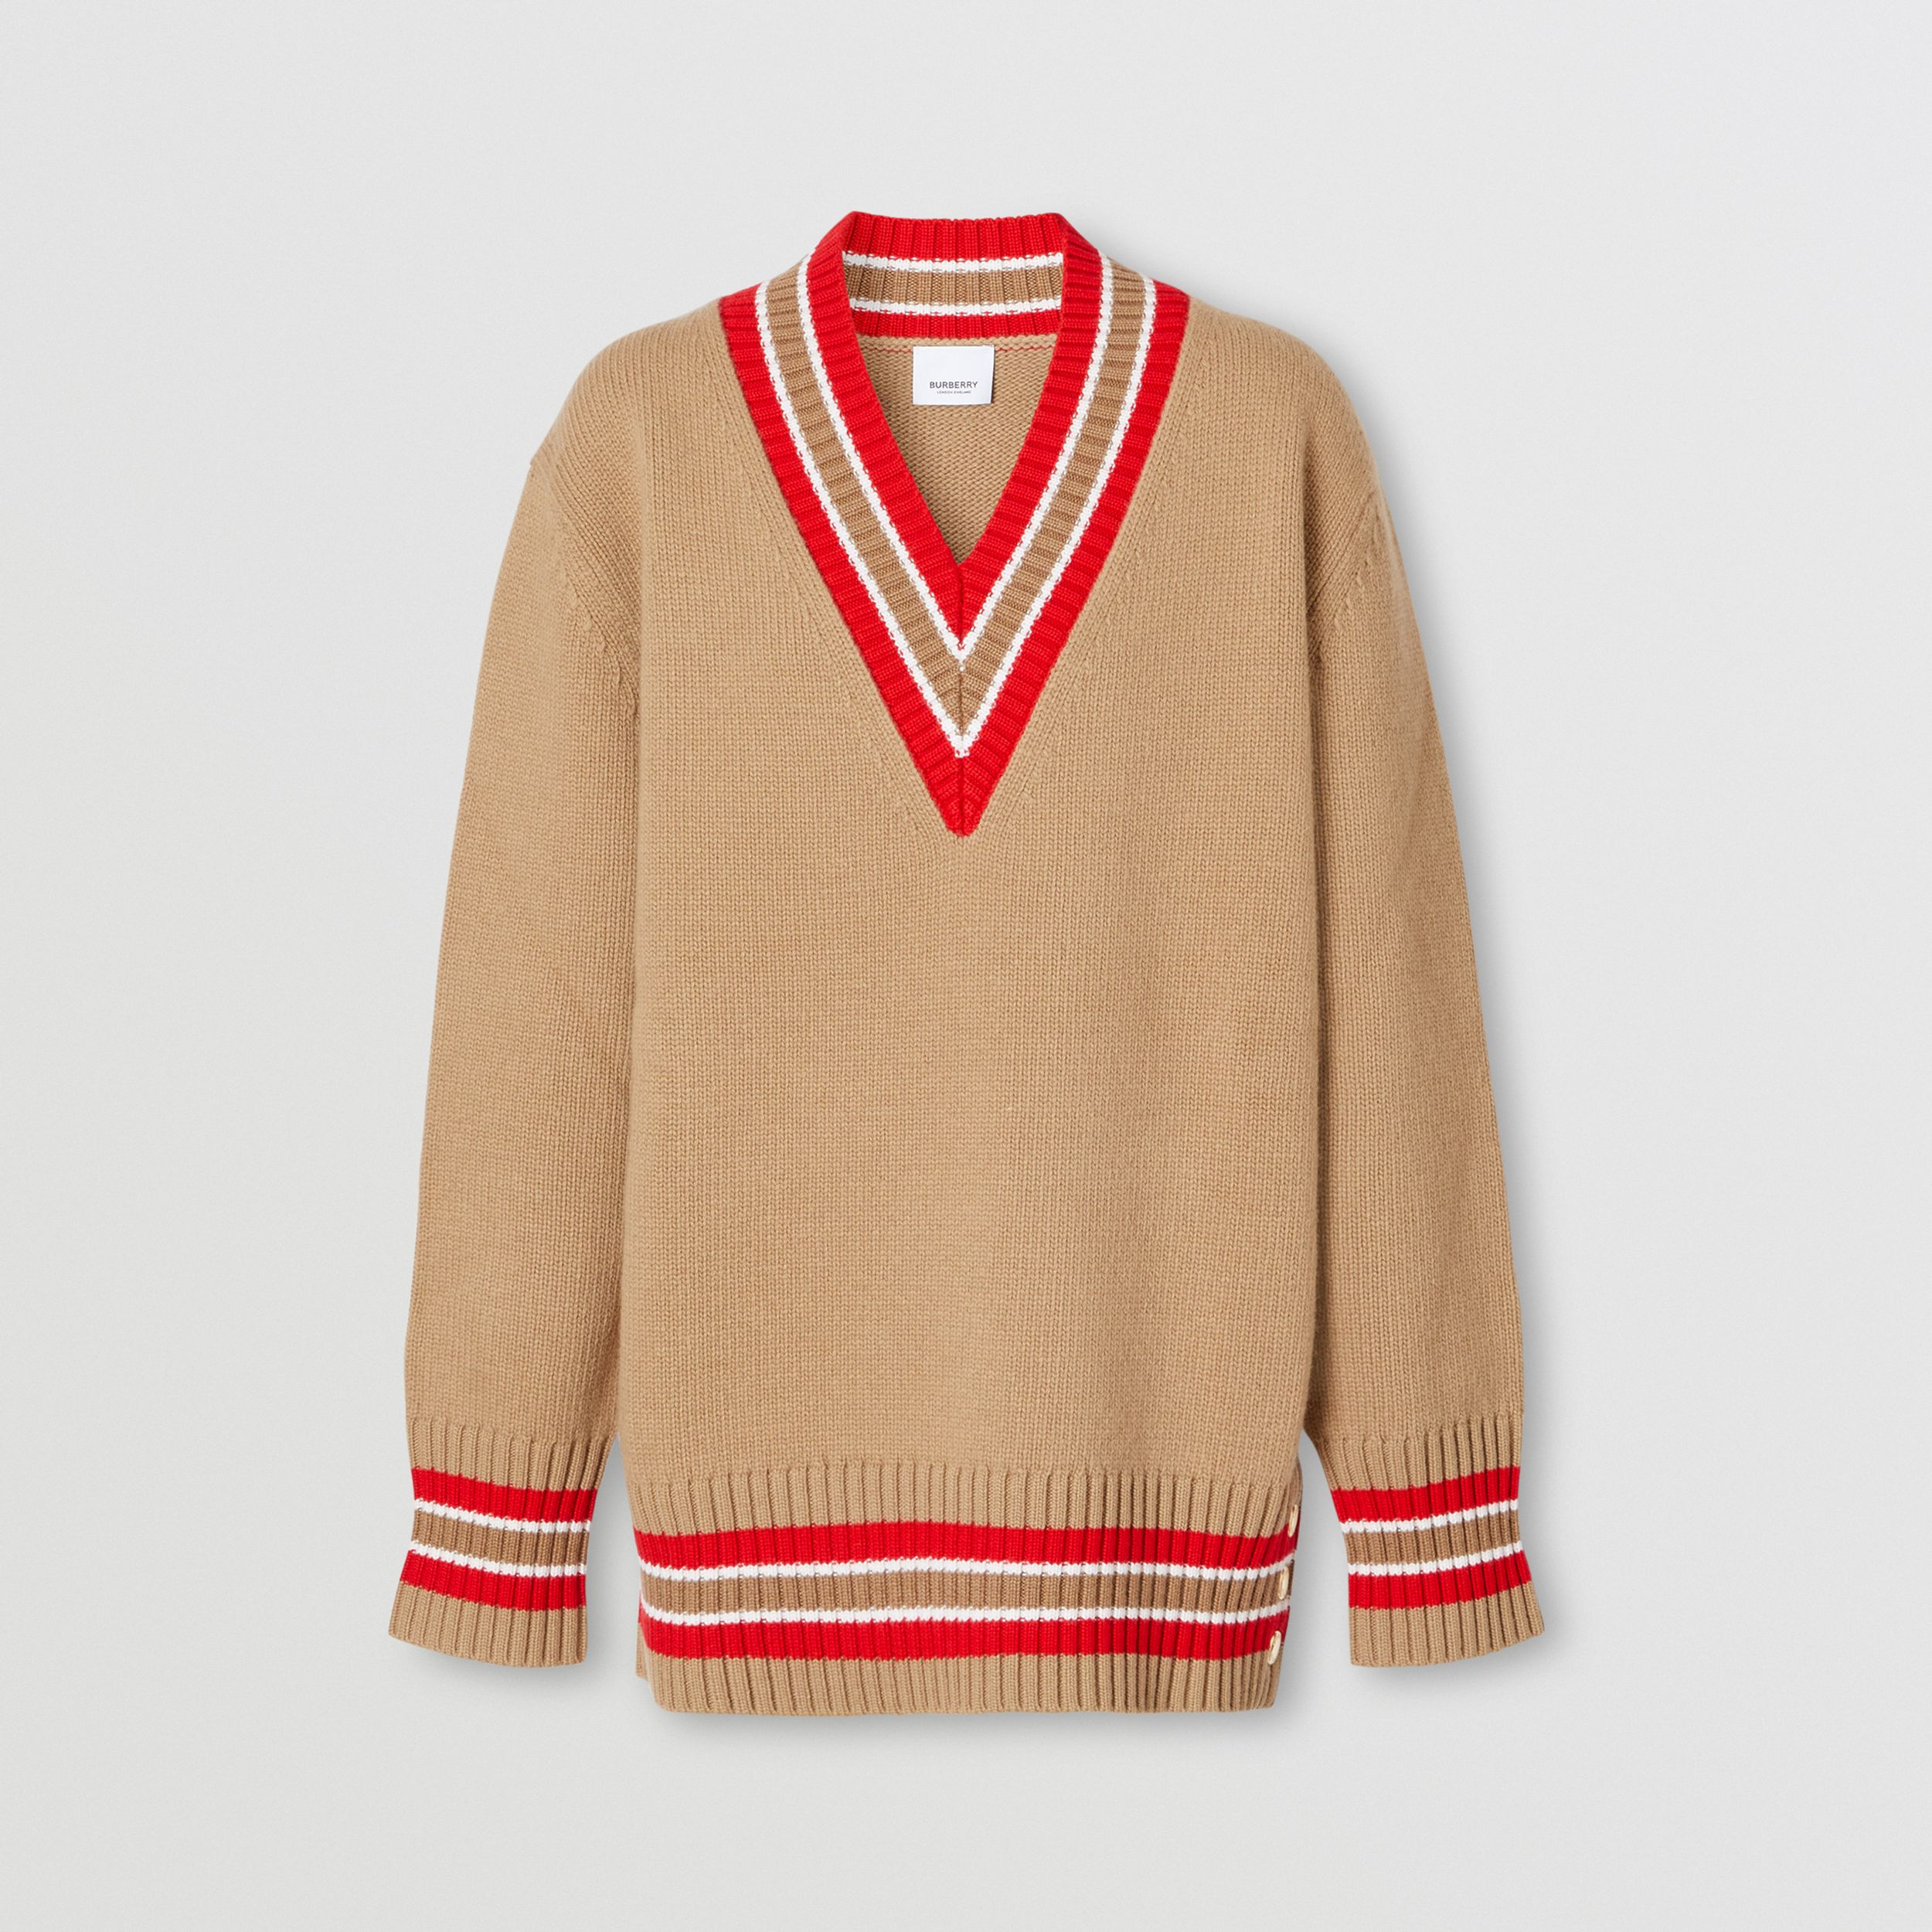 Wool Oversized Cricket Sweater in Camel - Women | Burberry Hong Kong S.A.R. - 4